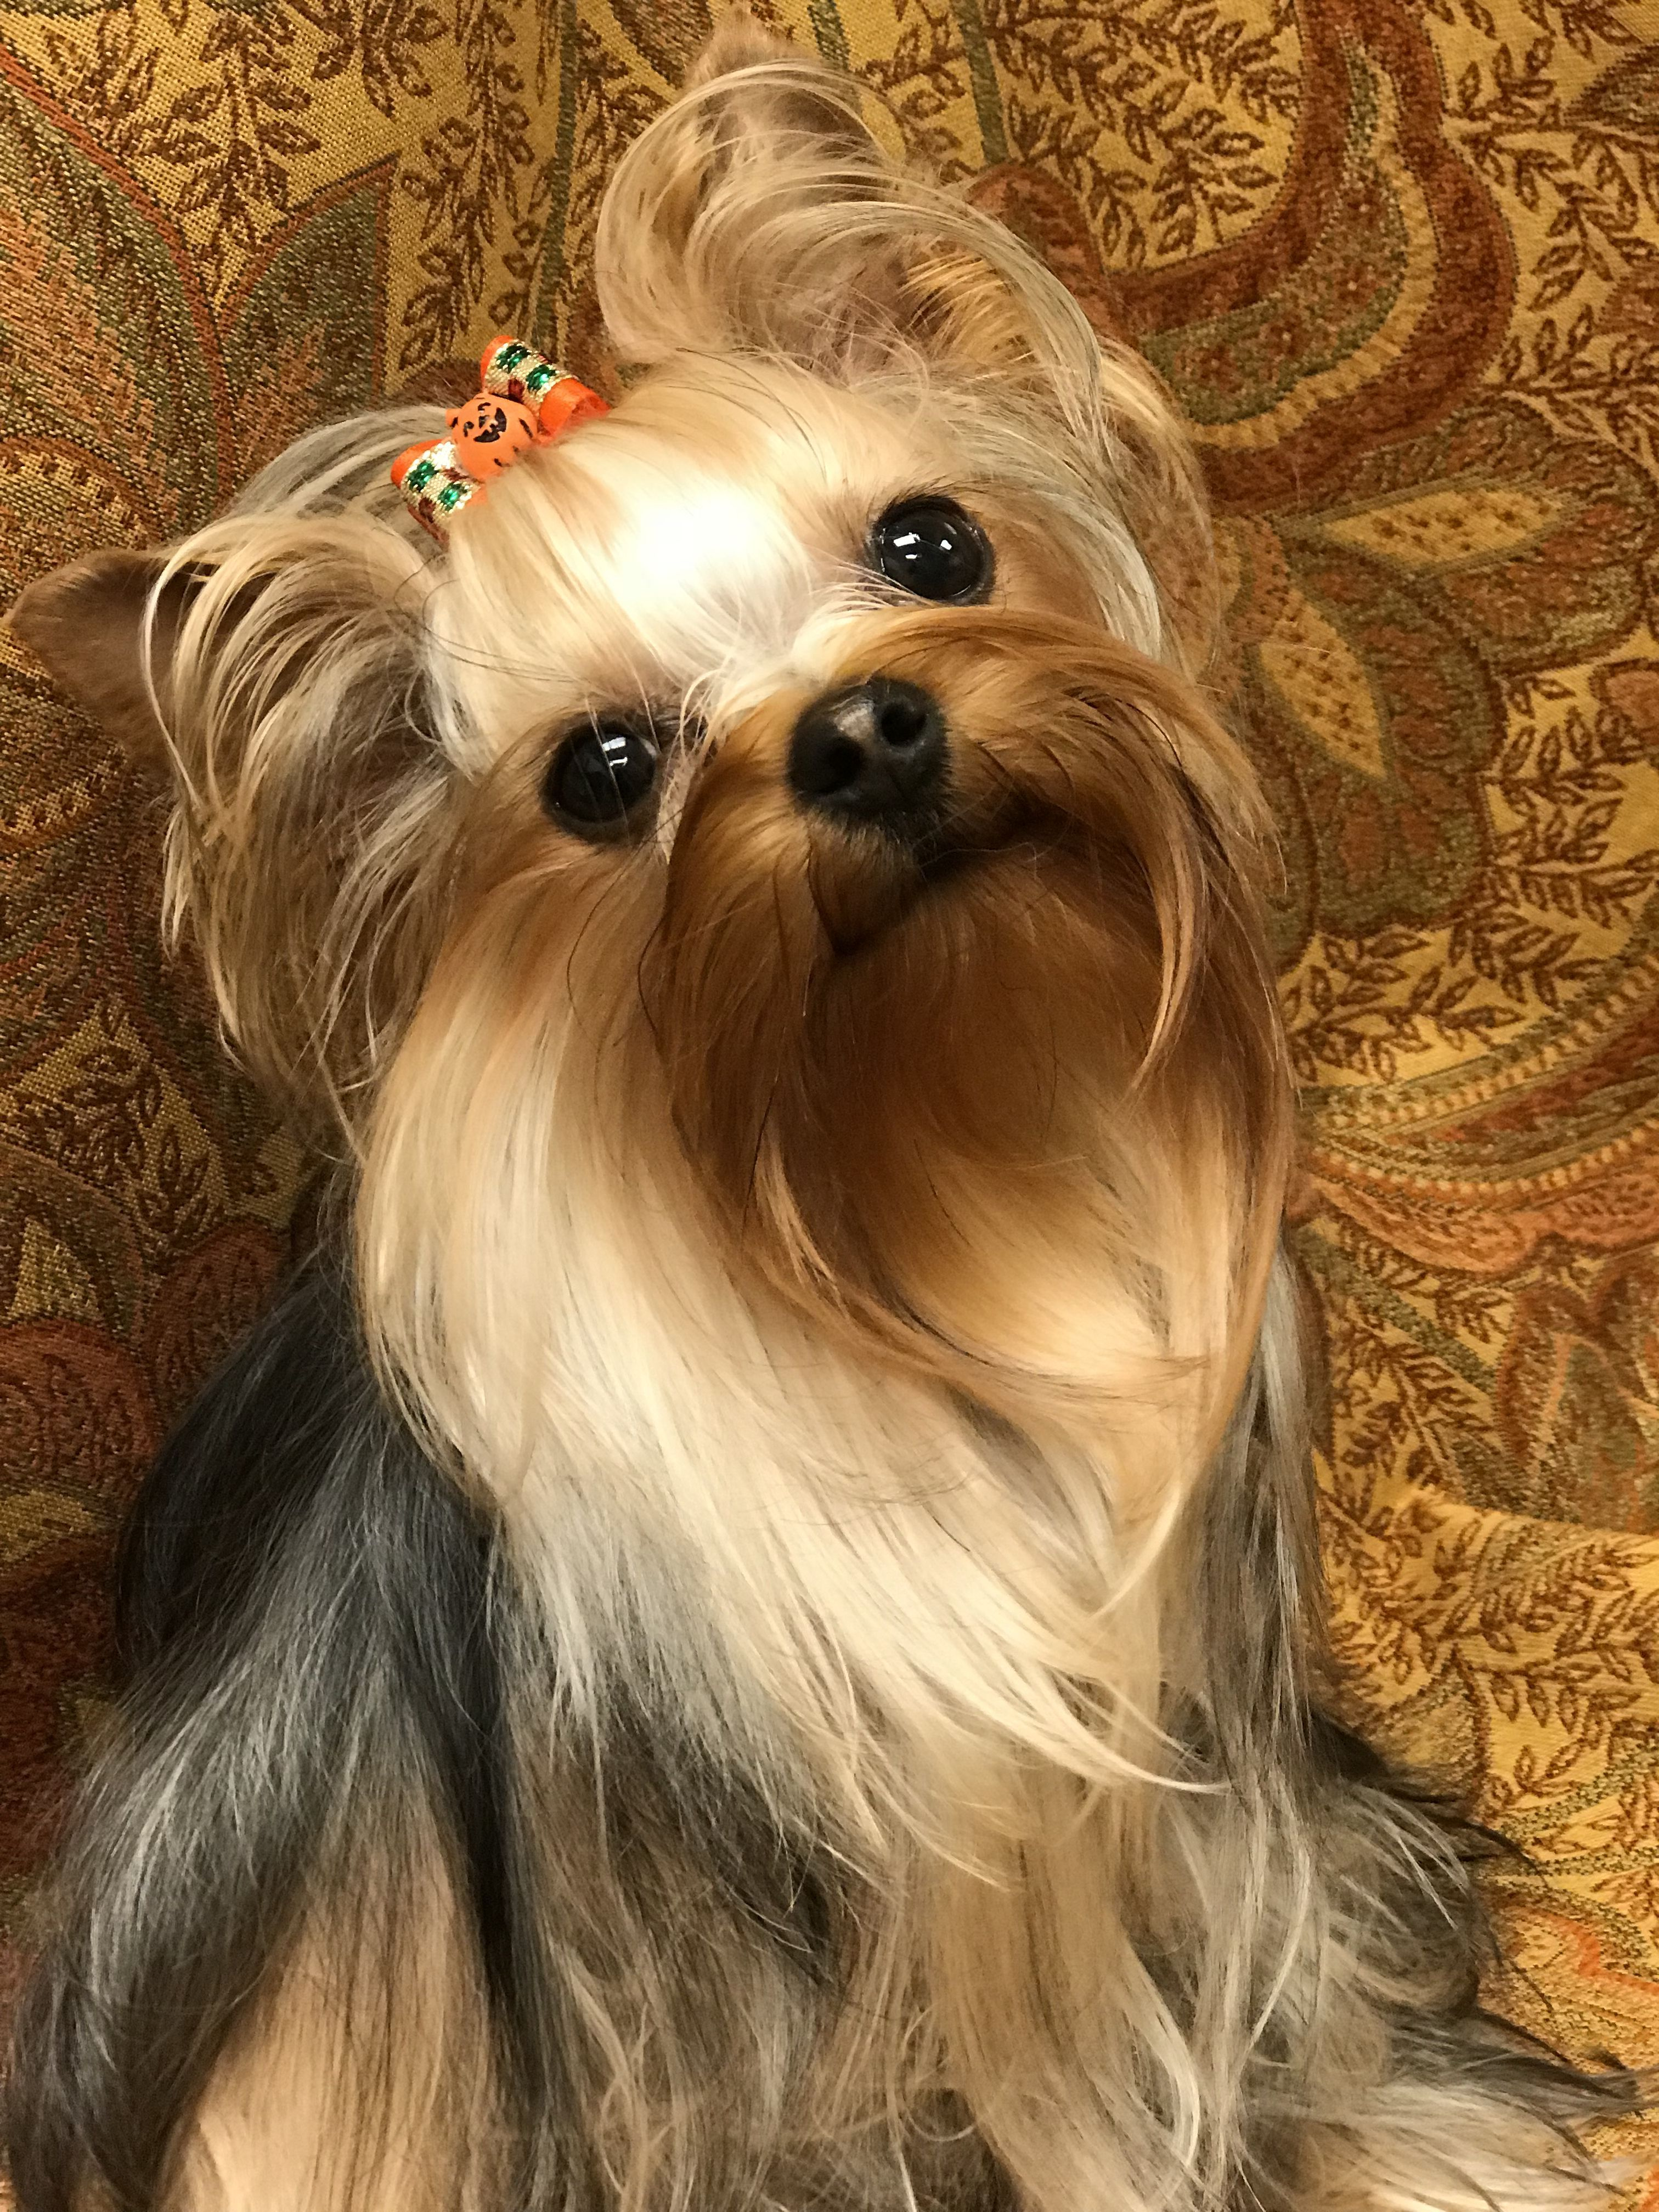 Coco Radford Yorkshire Terriers 540 986 1604 Yorkshireterrier Yorkshire Terrier Teacup Yorkshire Terrier Dog Yorkshire Terrier